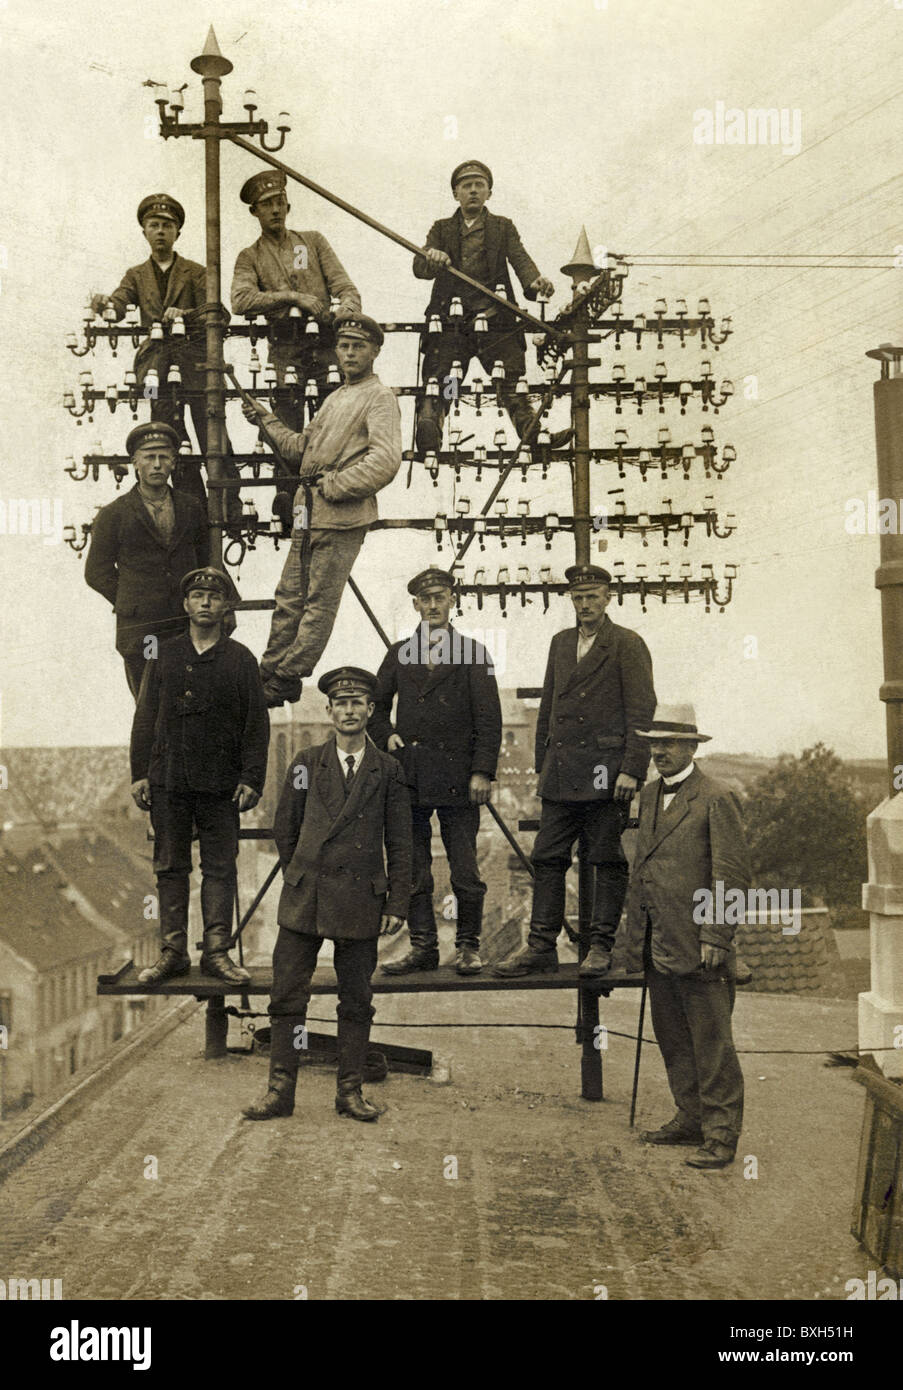 mail / post, telegraphy, worker with telegraph pole, under construction, Germany, early 20th century, historic, - Stock Image